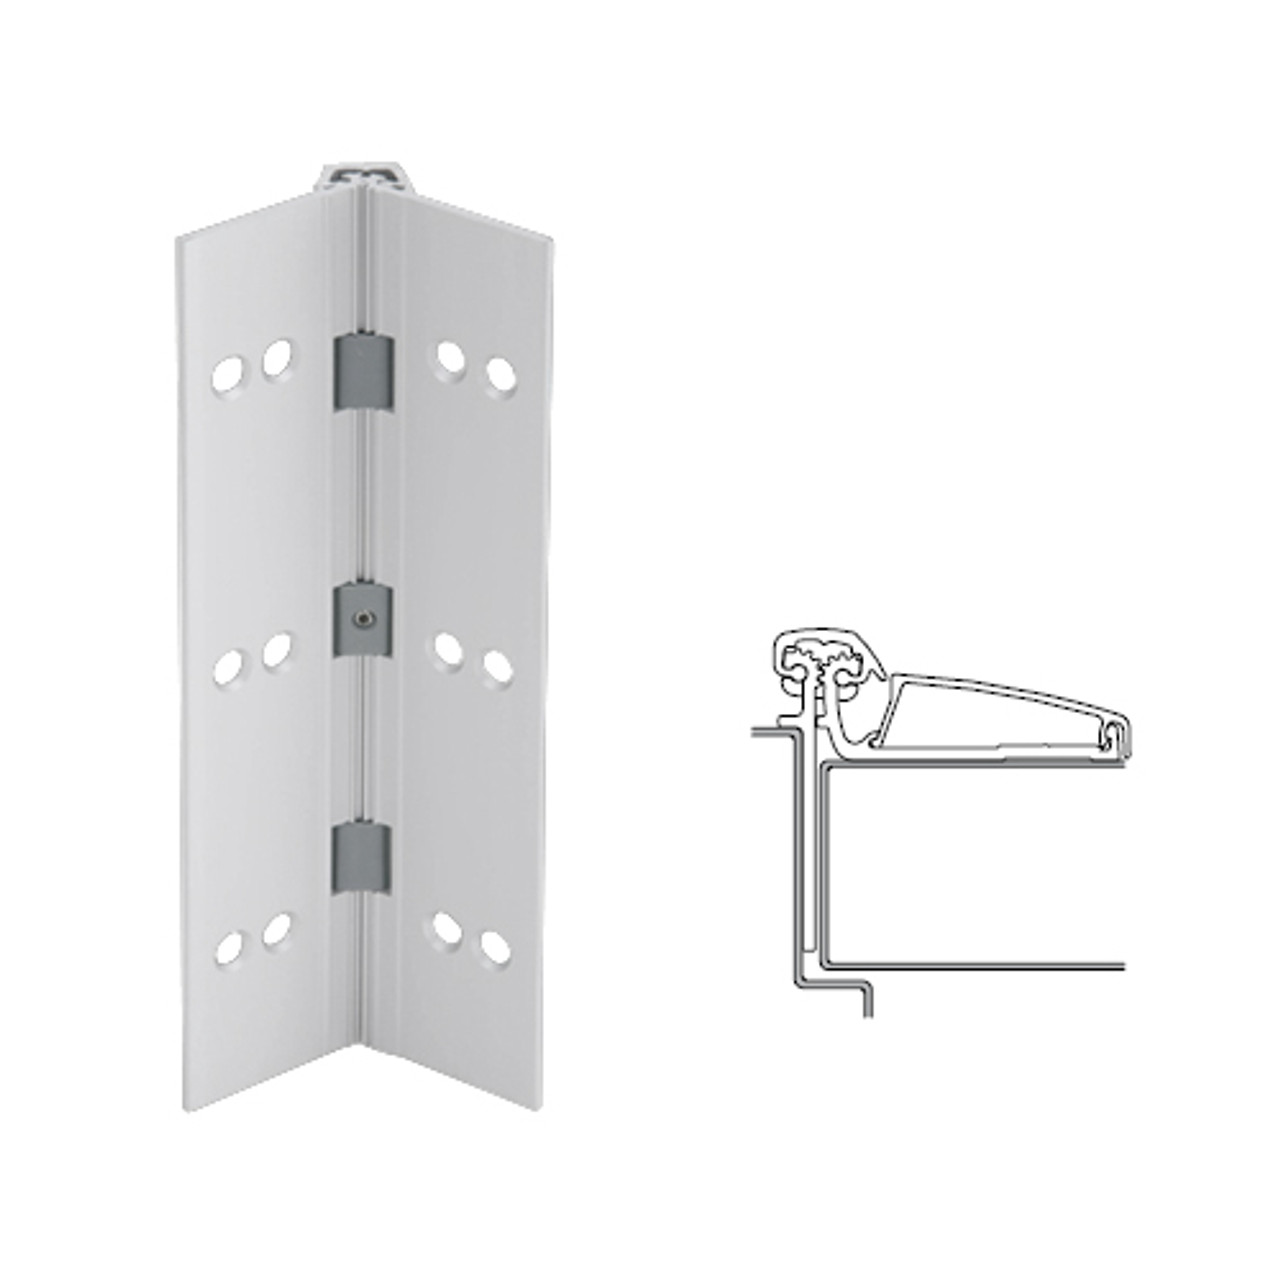 046XY-US28-120-SECWDHM IVES Adjustable Half Surface Continuous Geared Hinges with Security Screws - Hex Pin Drive in Satin Aluminum